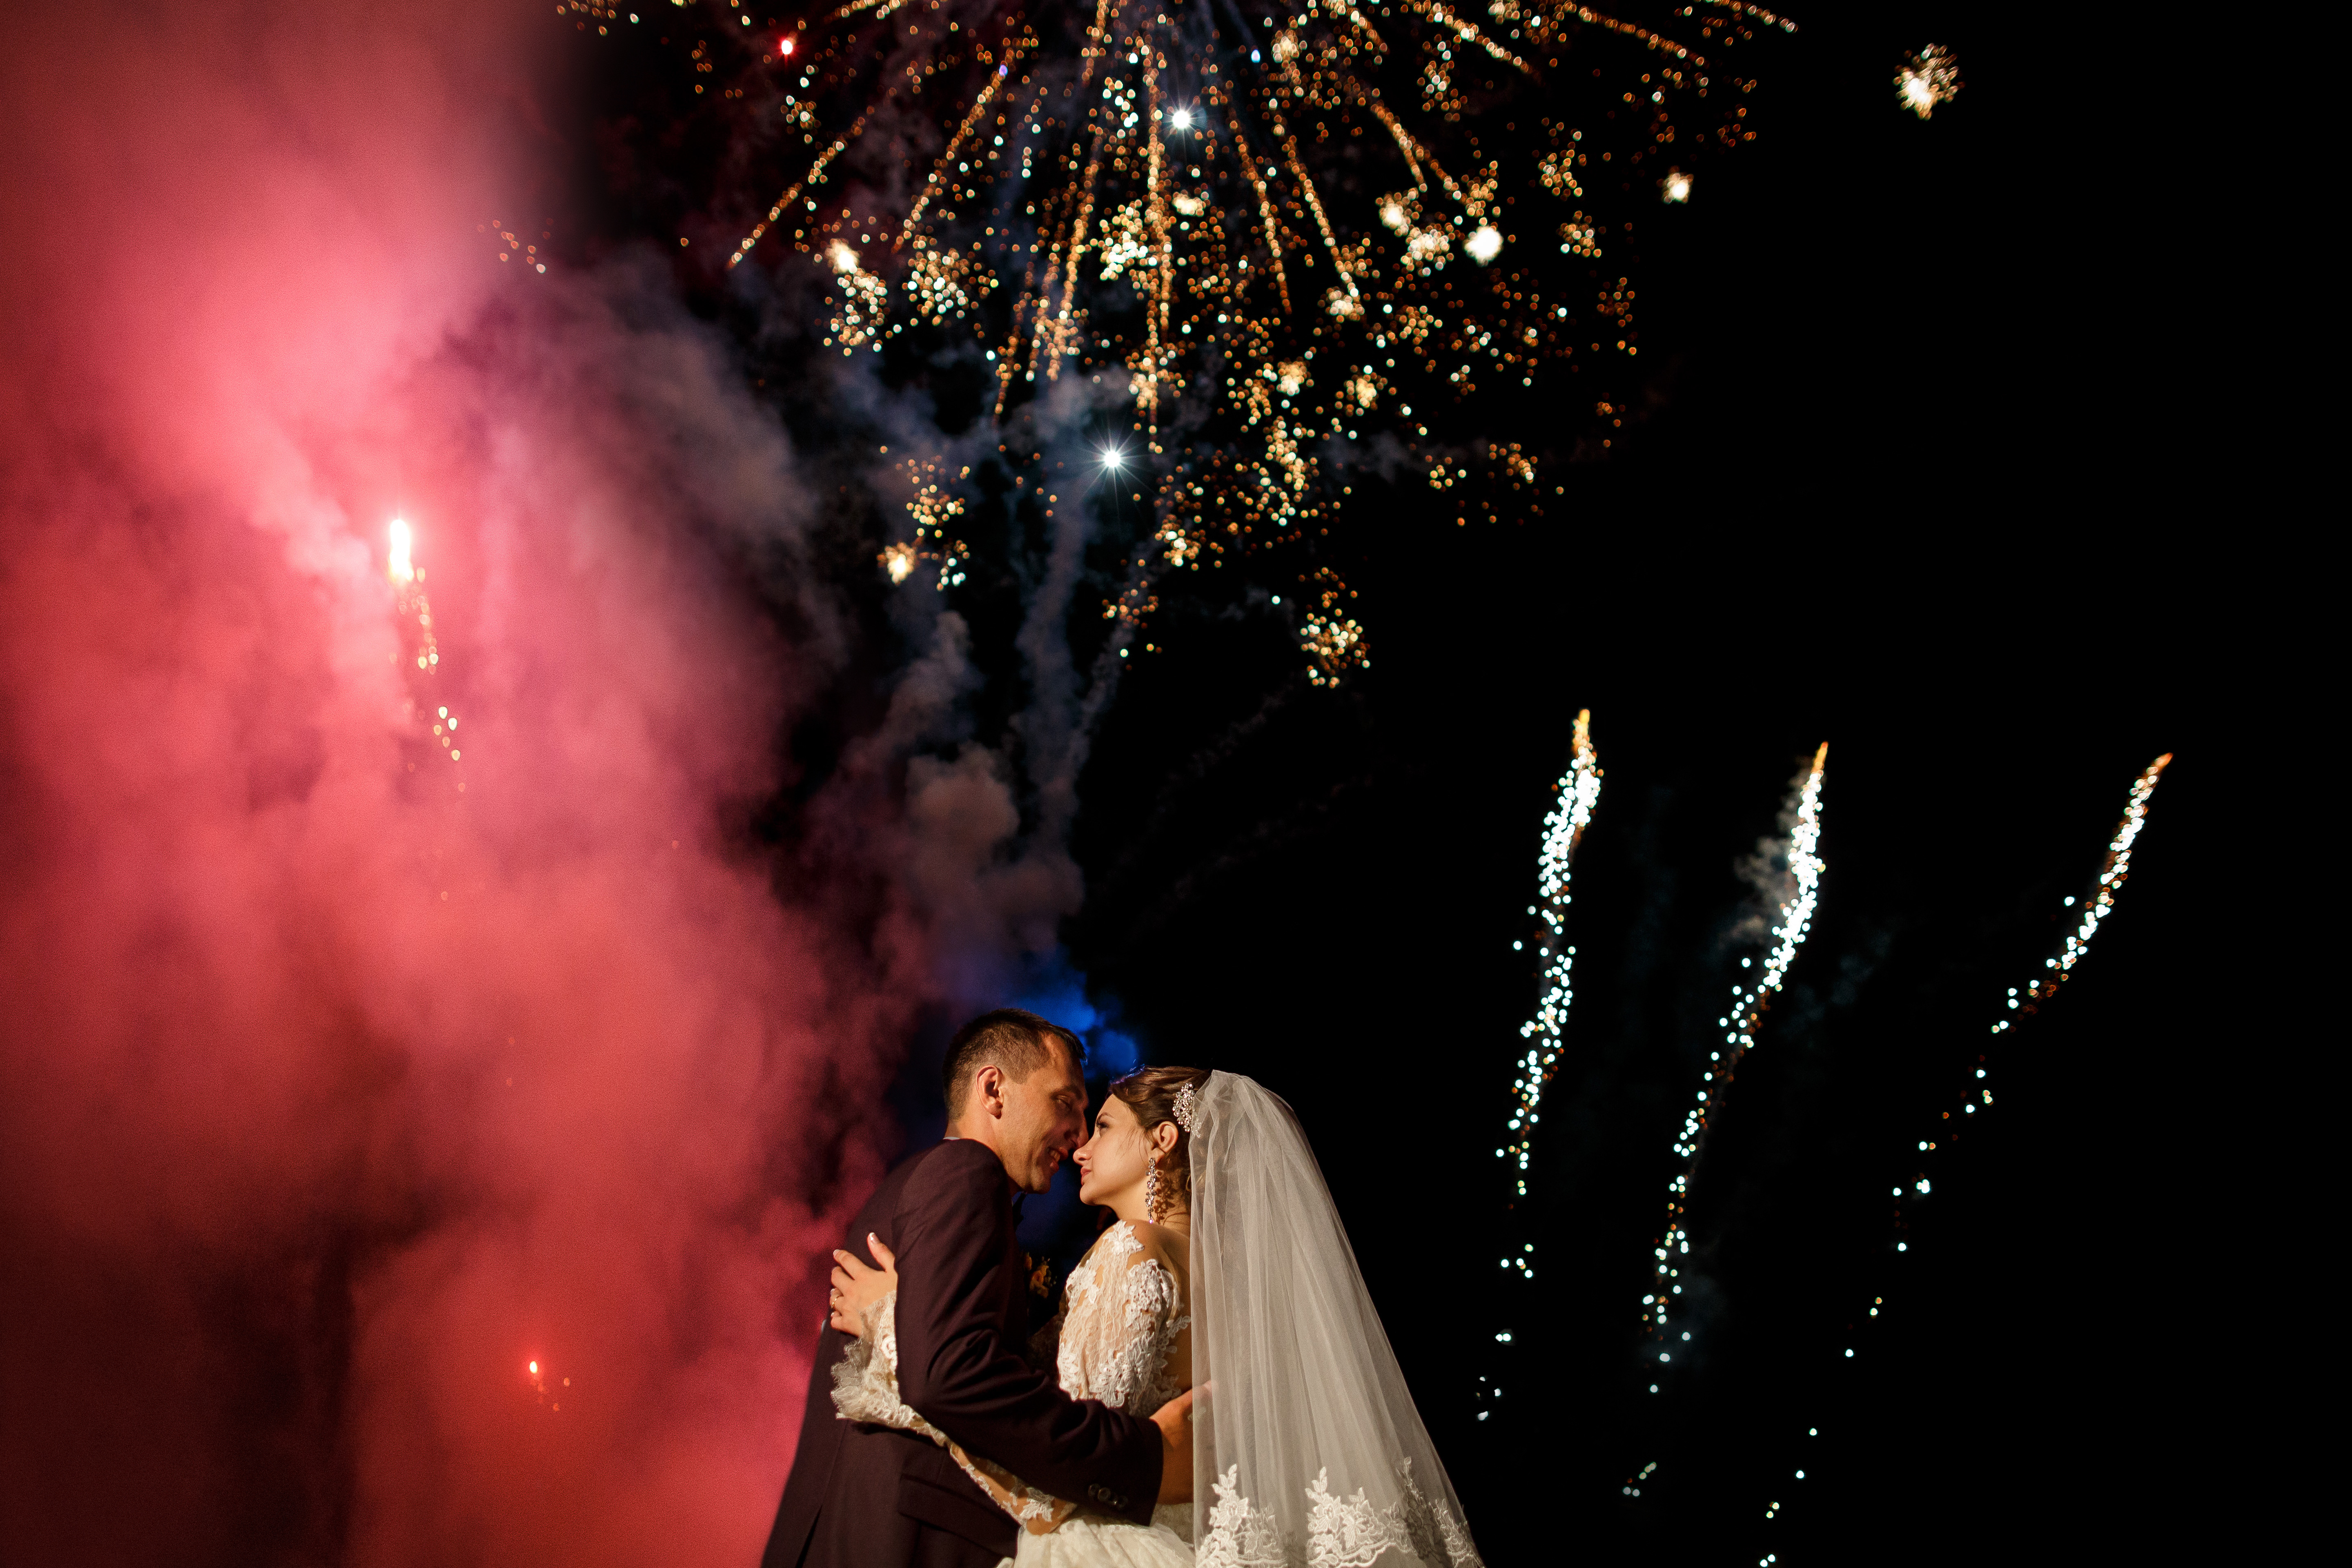 Wedding fireworks. Bride and groom hugging in the night on firework and salute background, wedding party